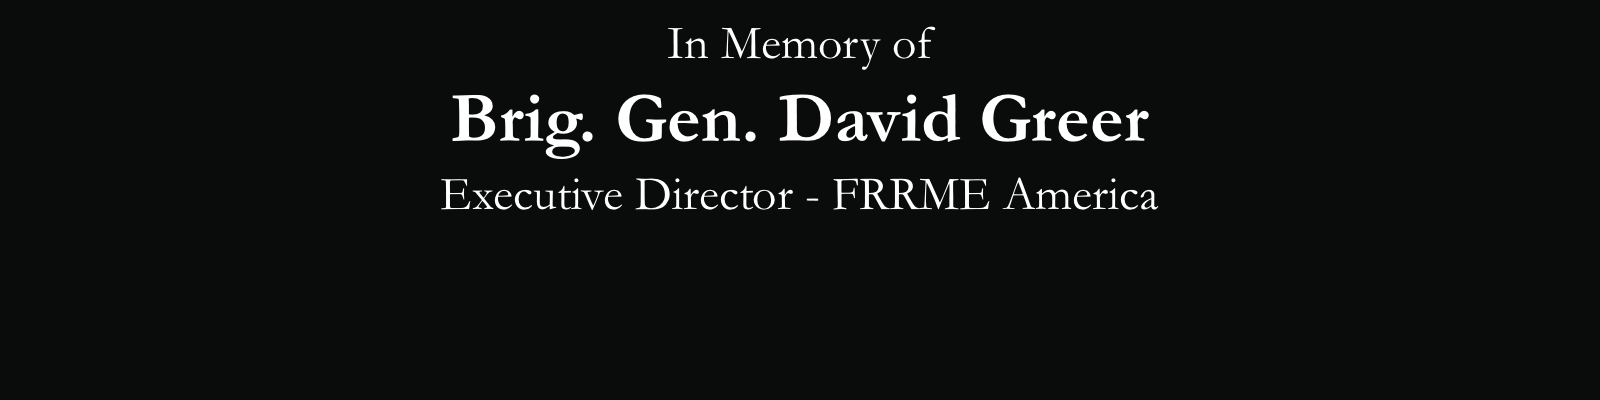 https://americanfrrme.org/wp-content/uploads/2020/08/in-memory-of-brig-general-david-greer-slider-homepage.png